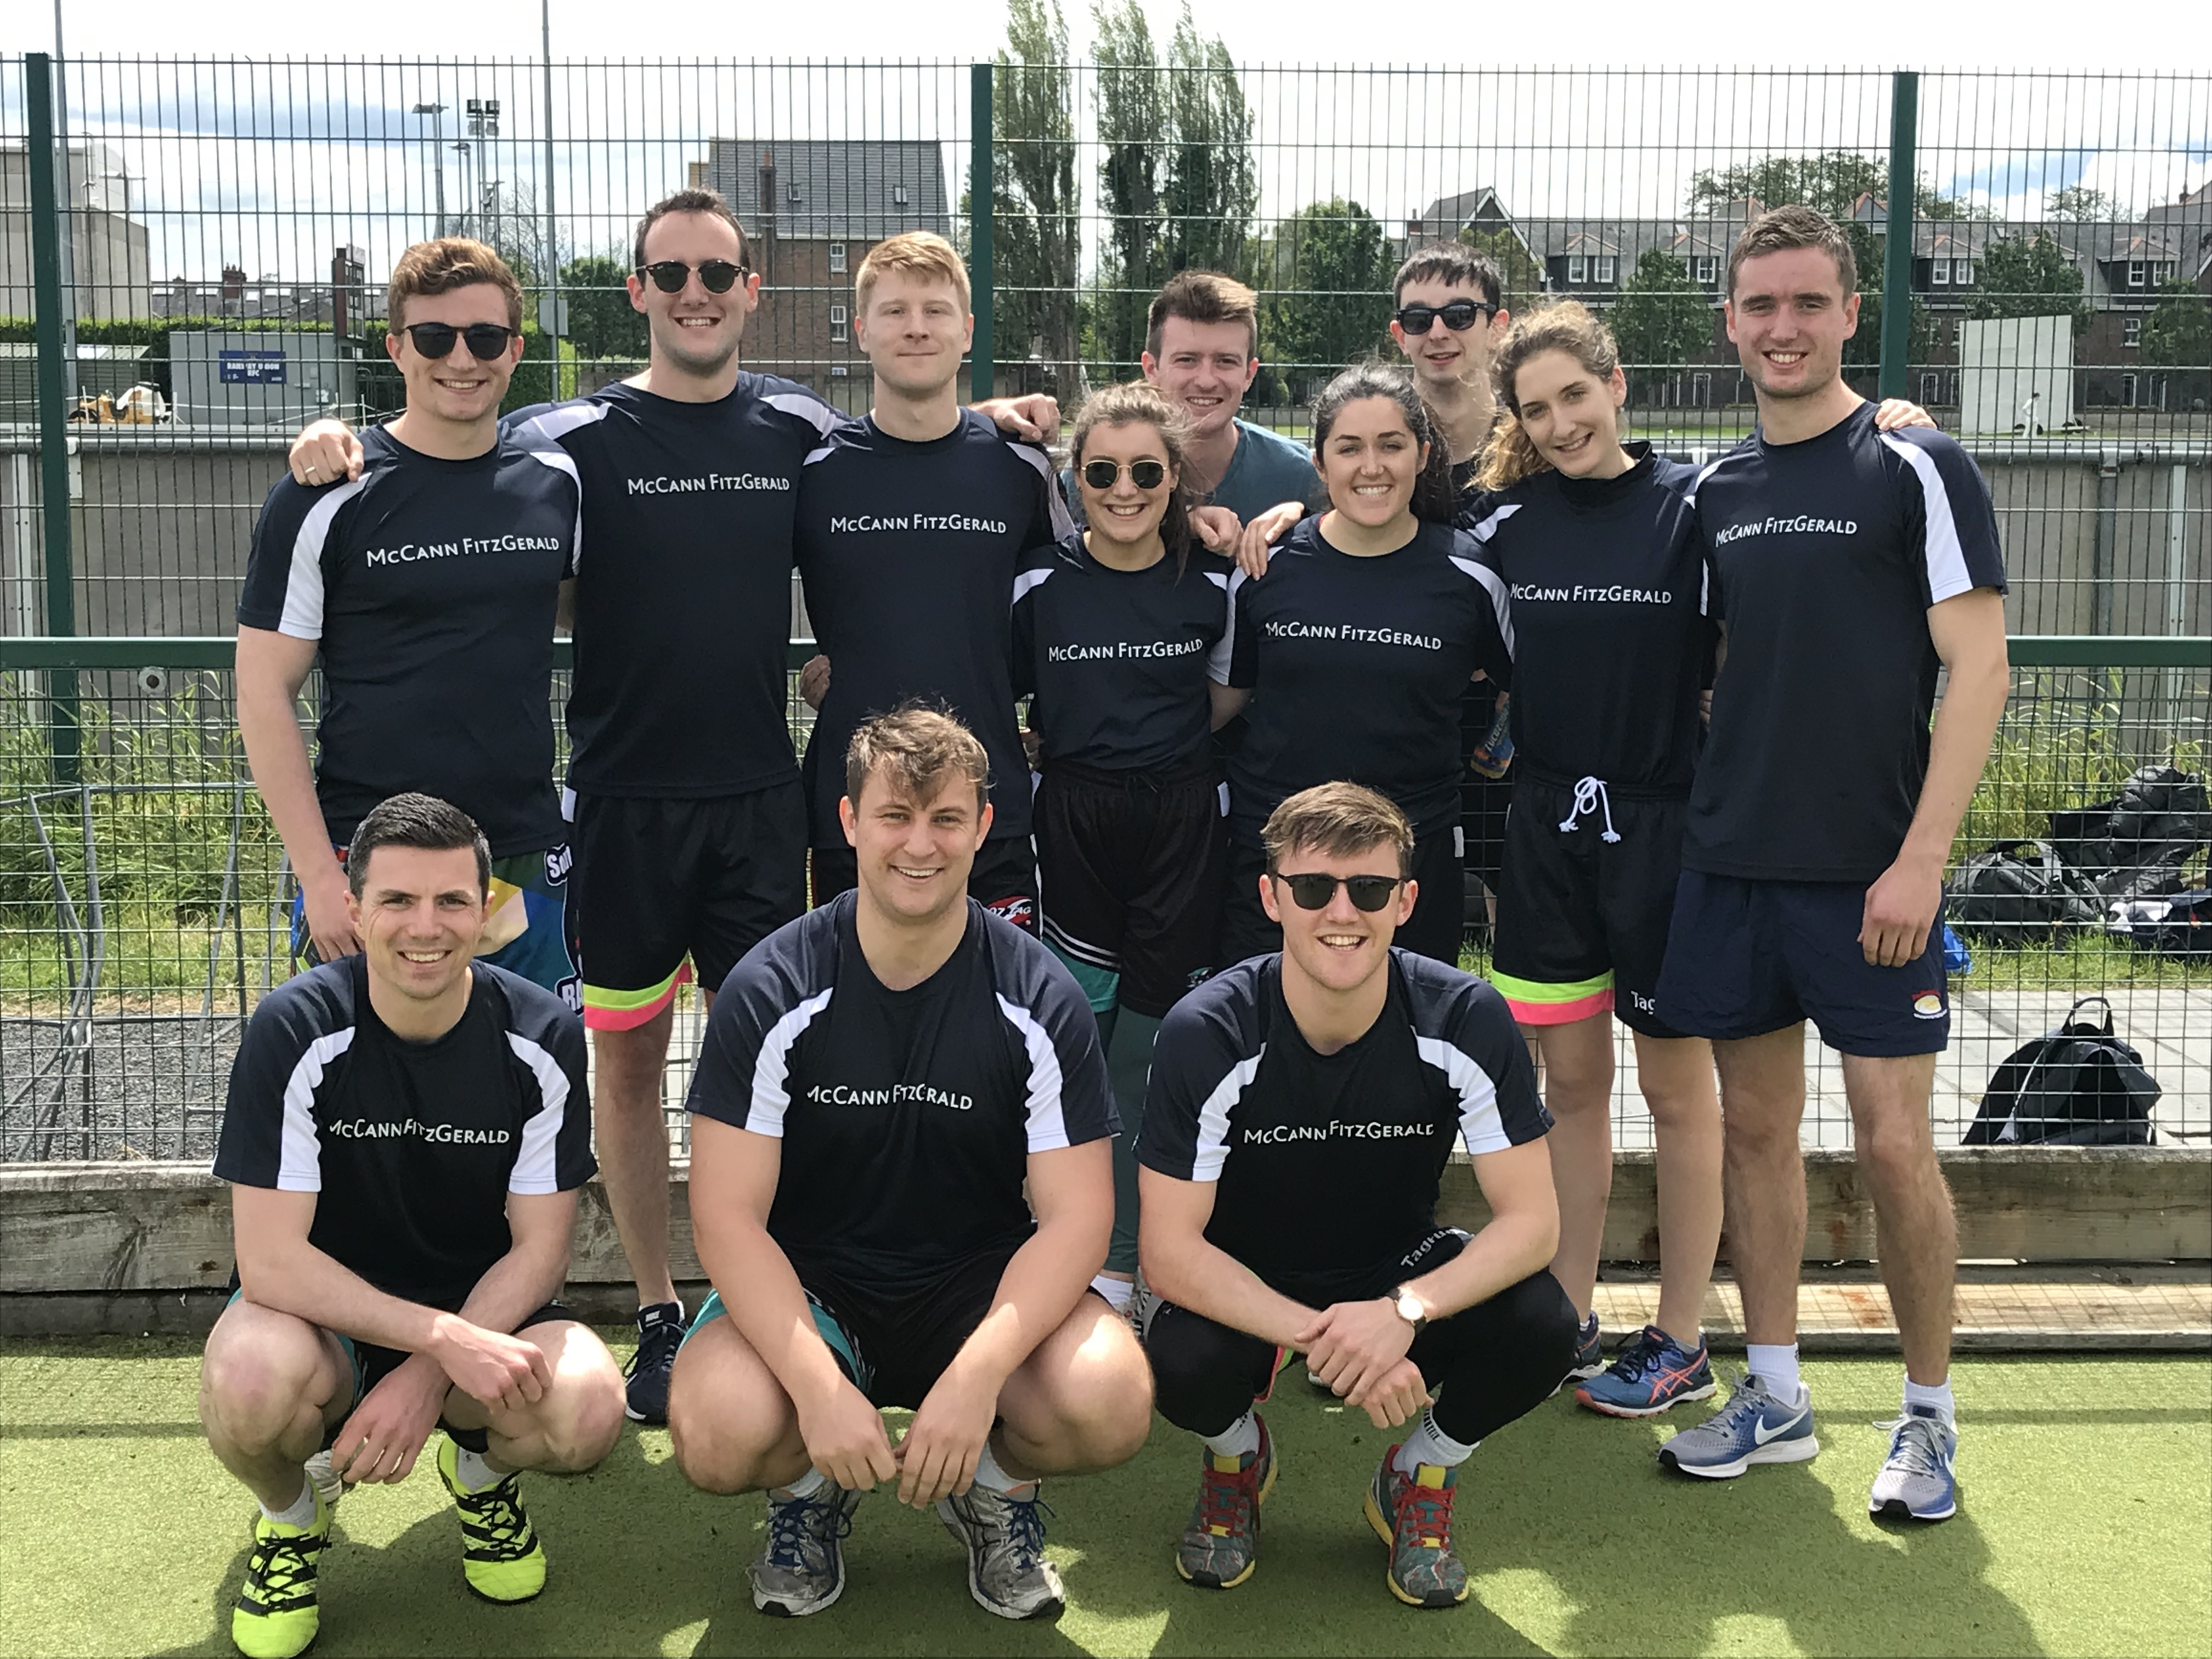 McCann Fitzgerald team at SYS tag rugby tournament 2019